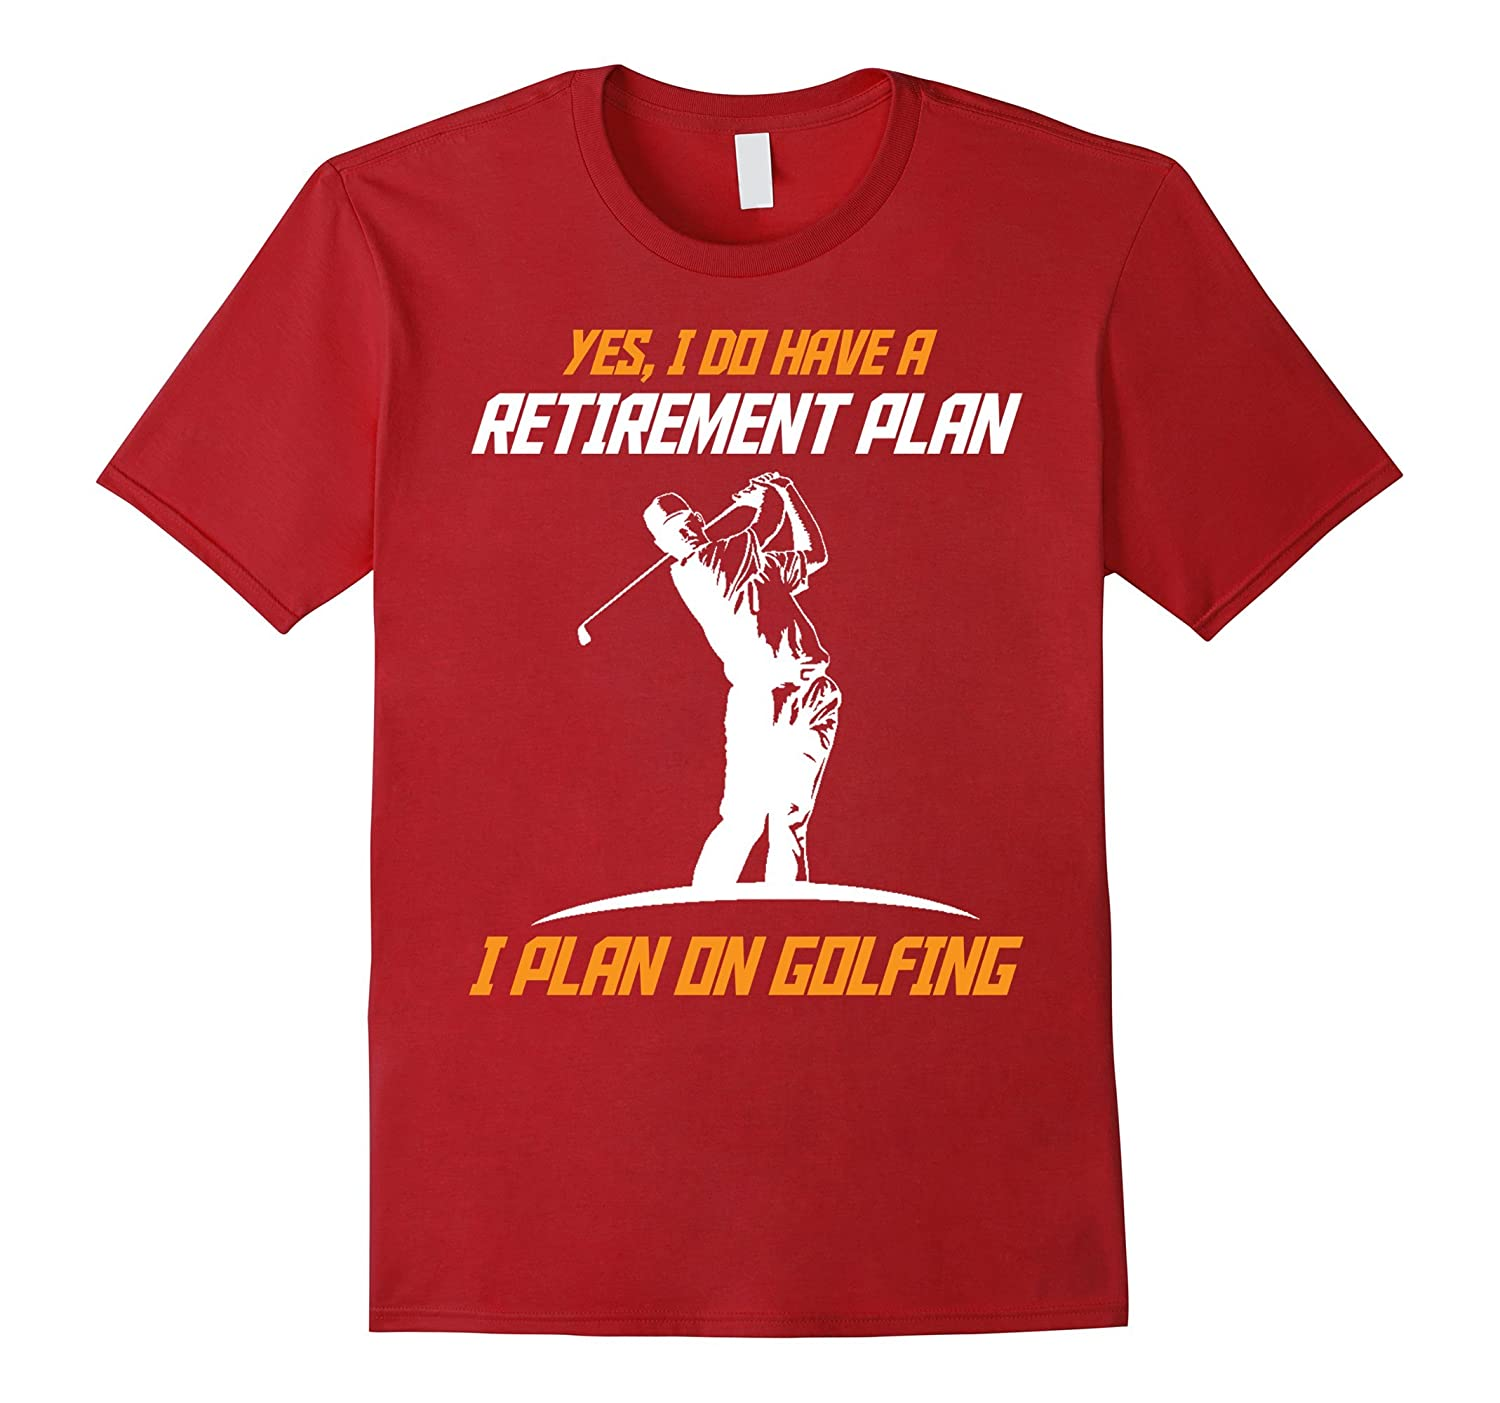 YES, I DO HAVE A RETIREMENT PLAN ON Golfing T-Shirt-TH